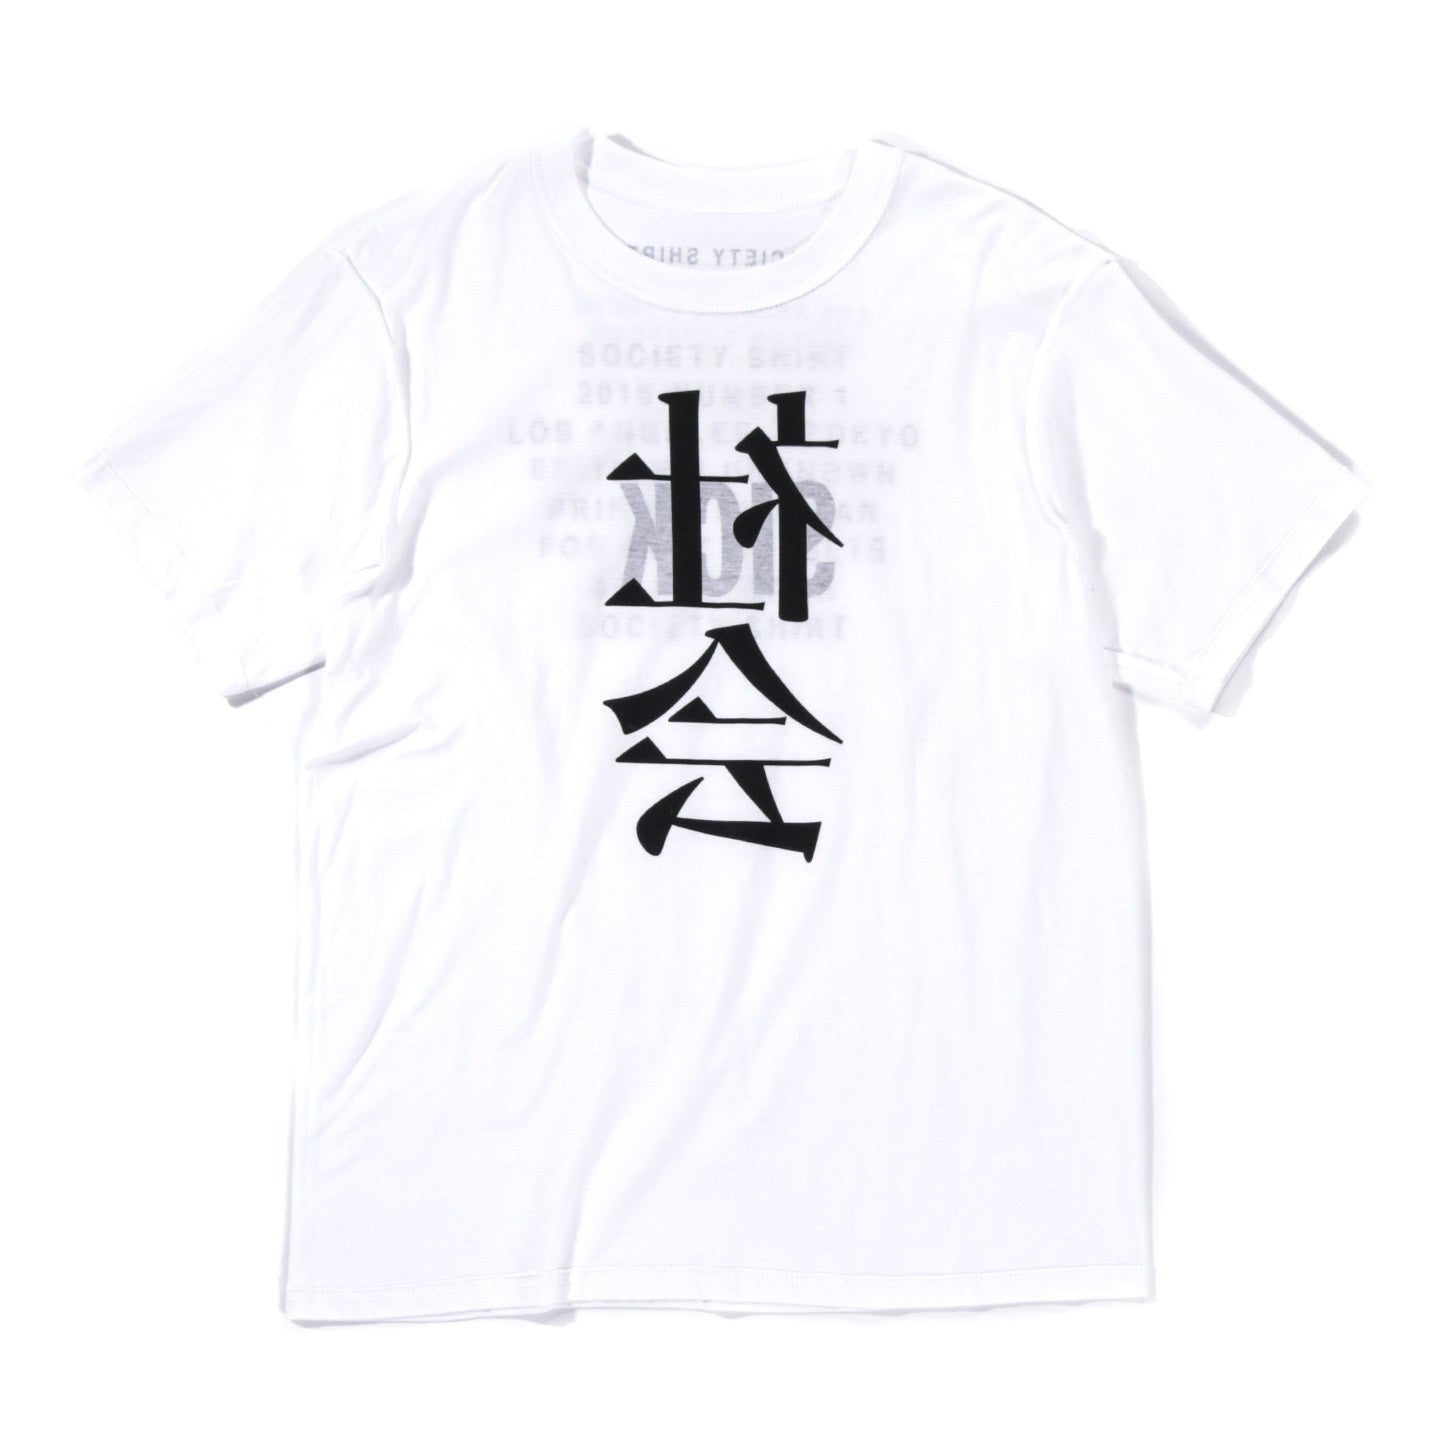 SOCIETY SICK T-SHIRT WHITE